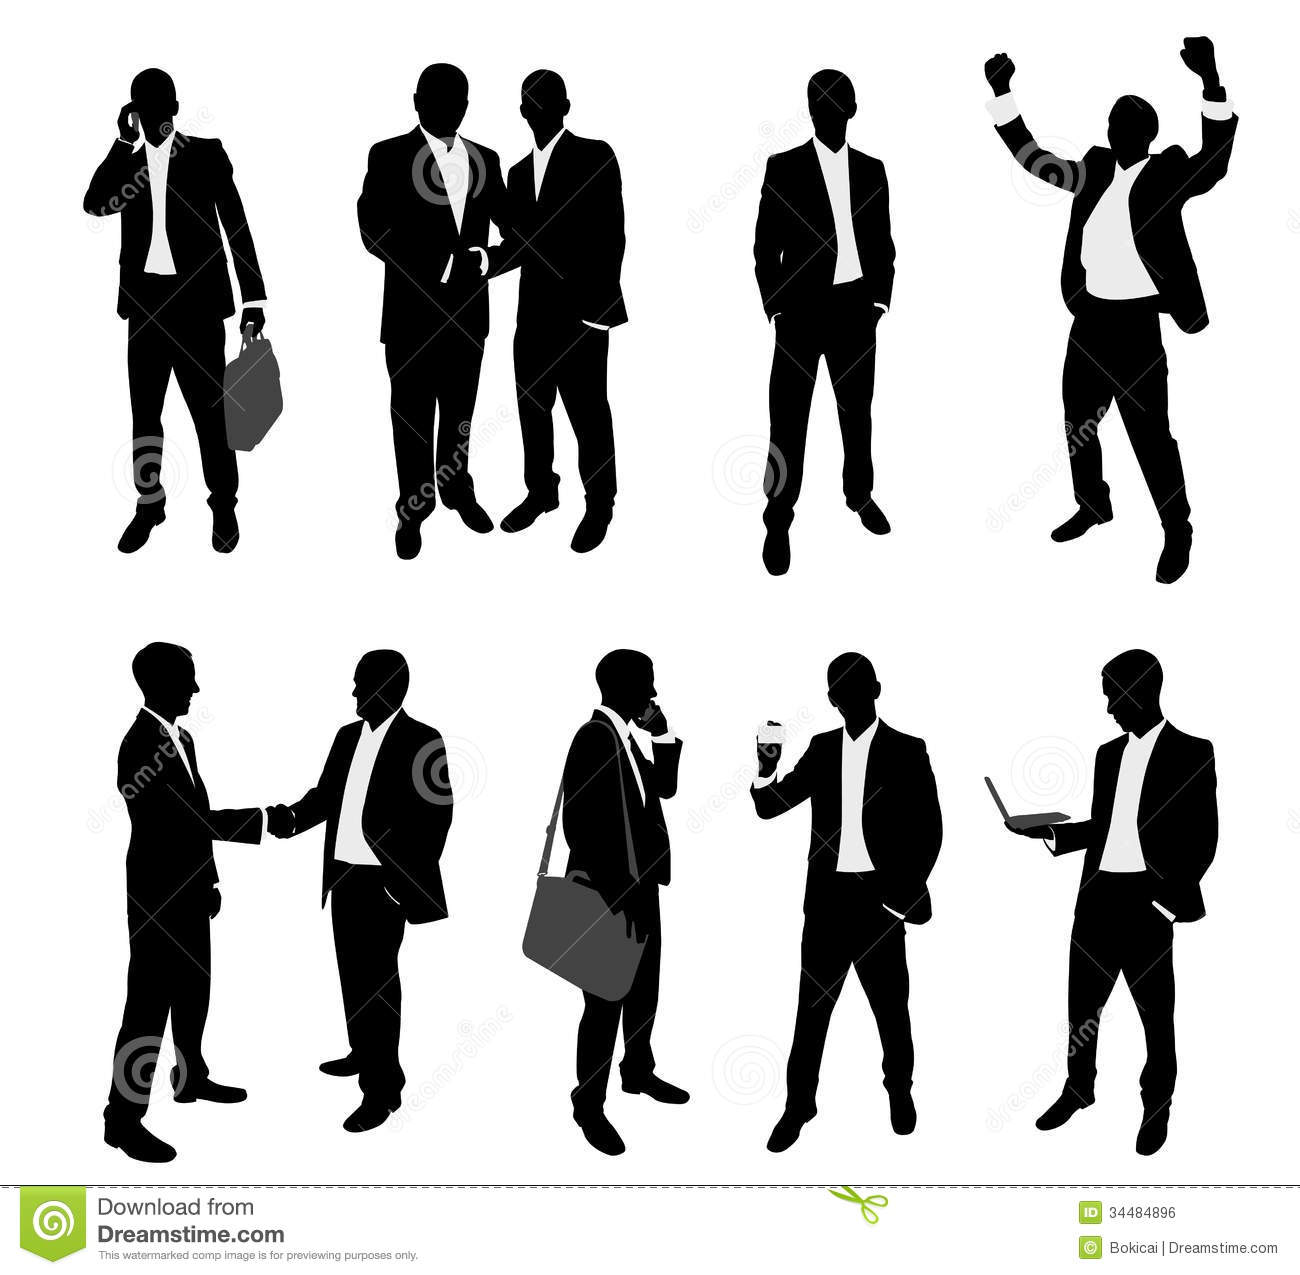 Business People Silhouettes Royalty Free Stock Image   Image  34484896